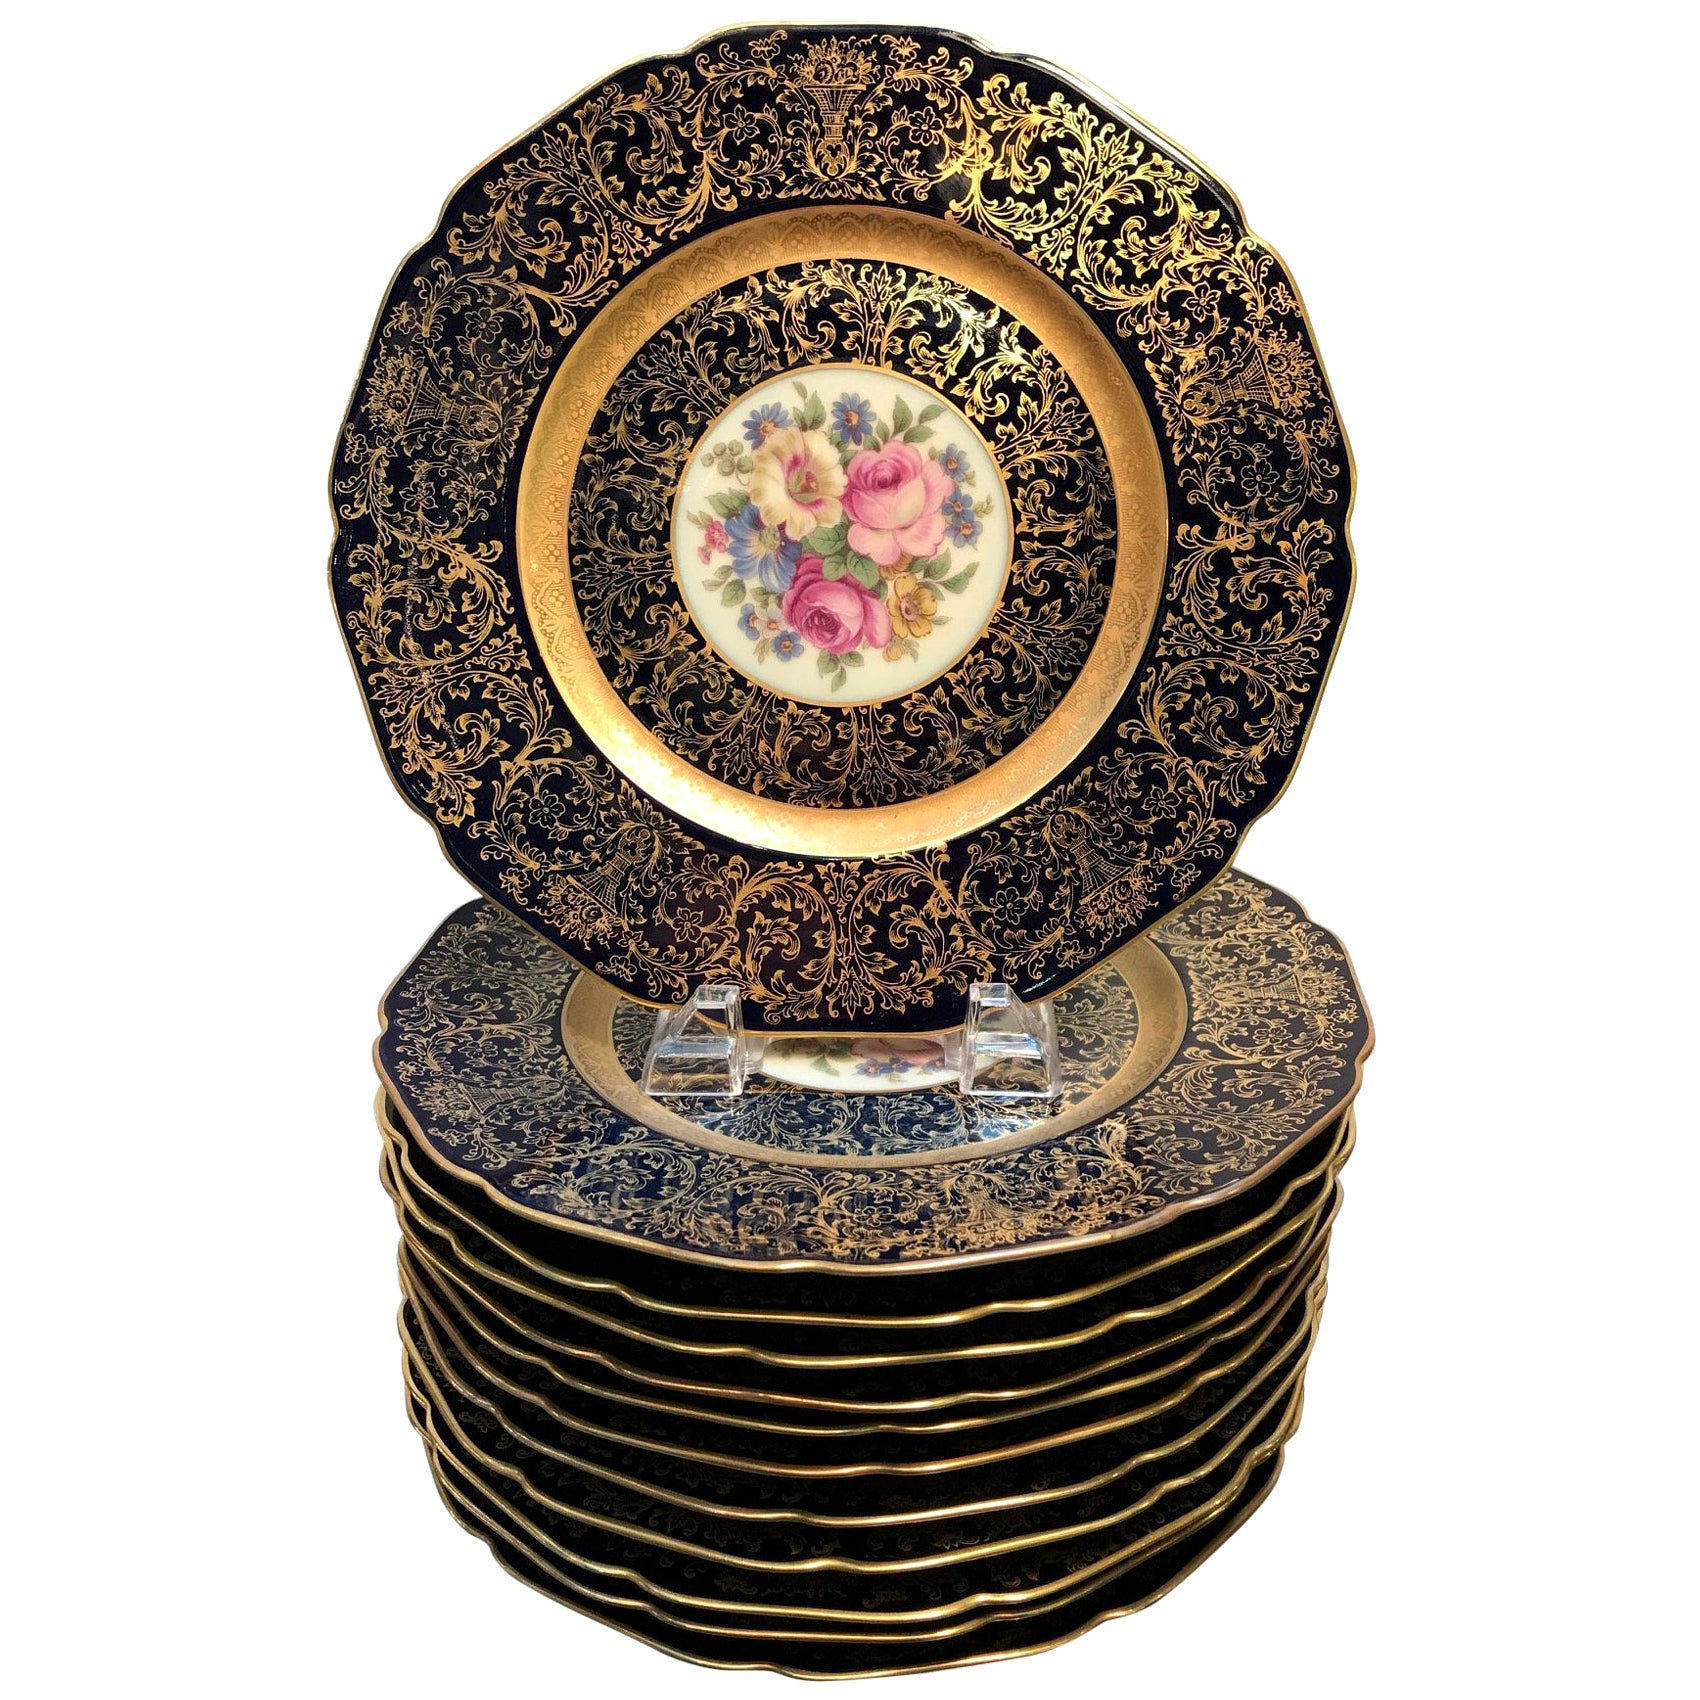 Set of 12 Elaborate Cobalt and Gilt Floral Service Plates